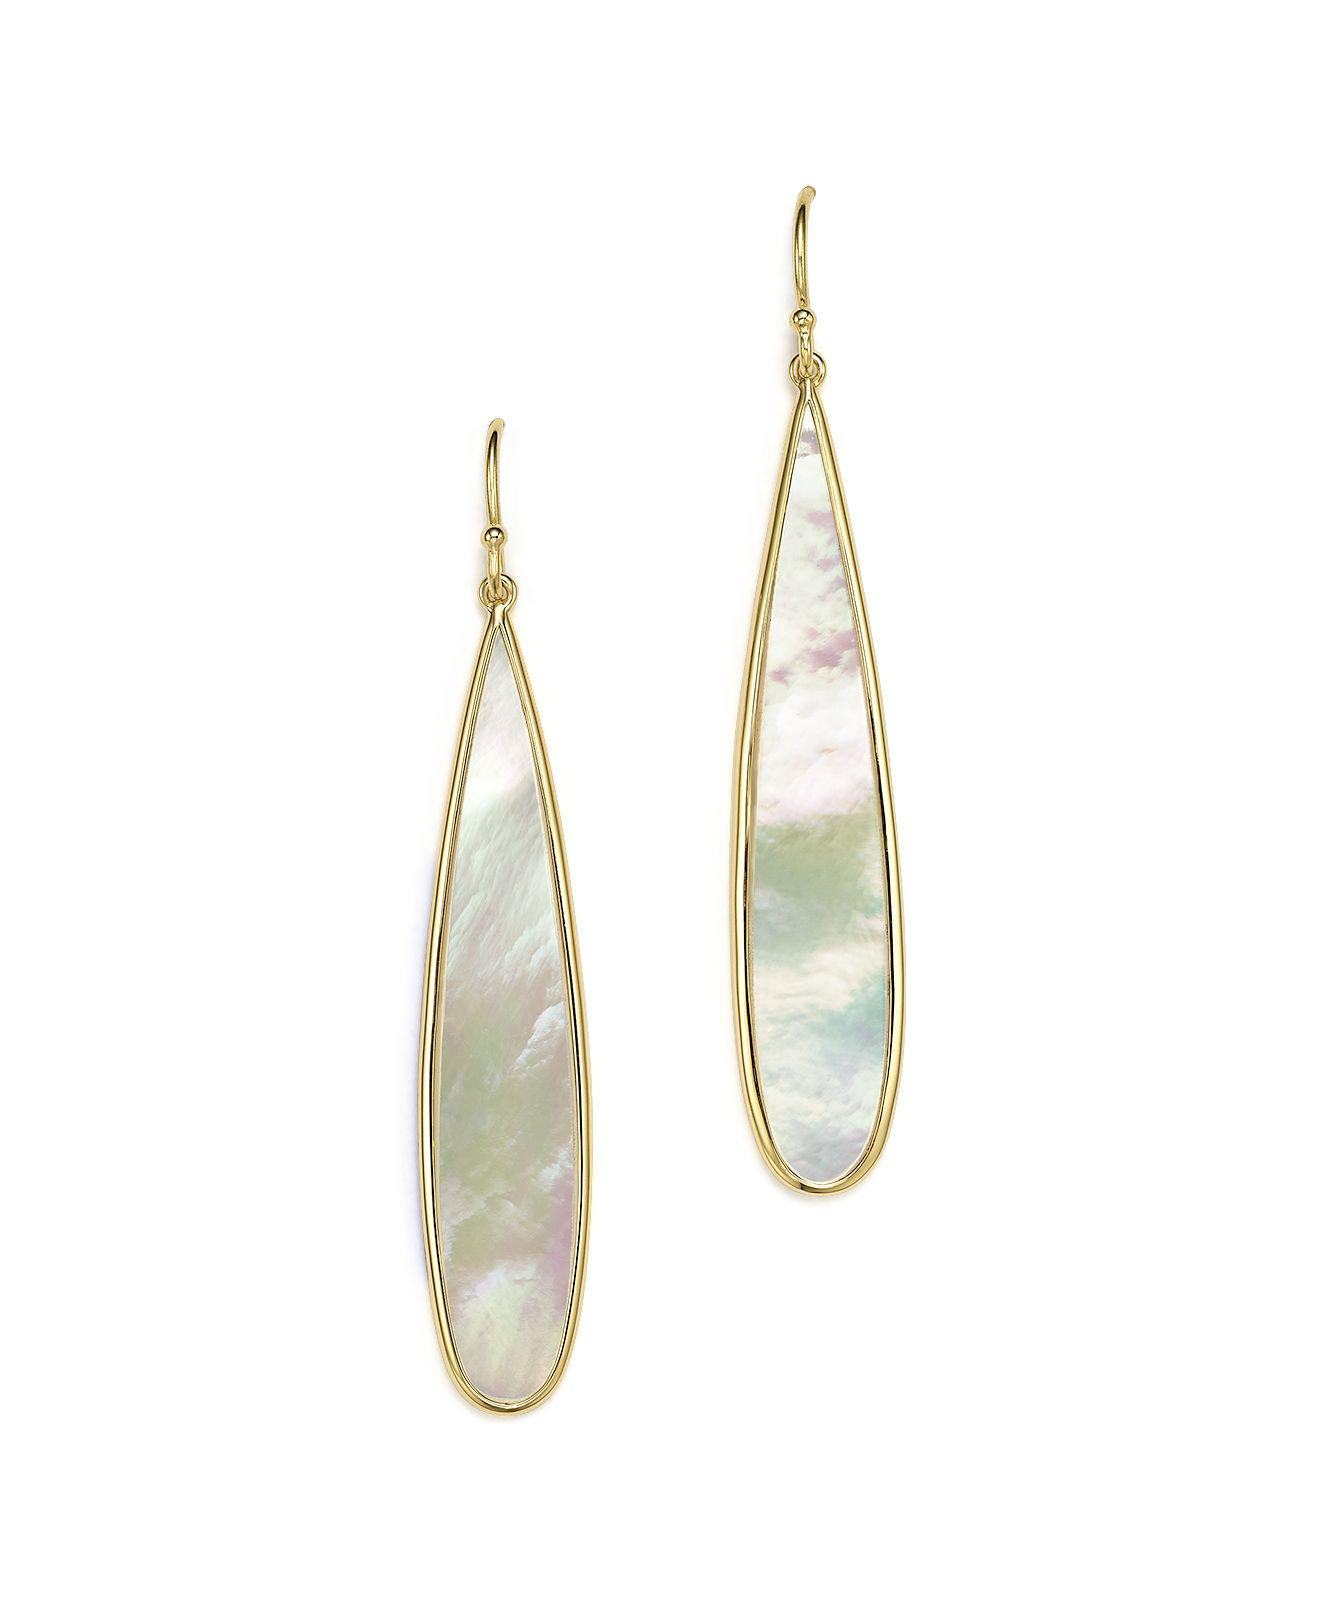 Ippolita 18K Rock Candy Mother-of-Pearl Long Drop Earrings cQwcGR91